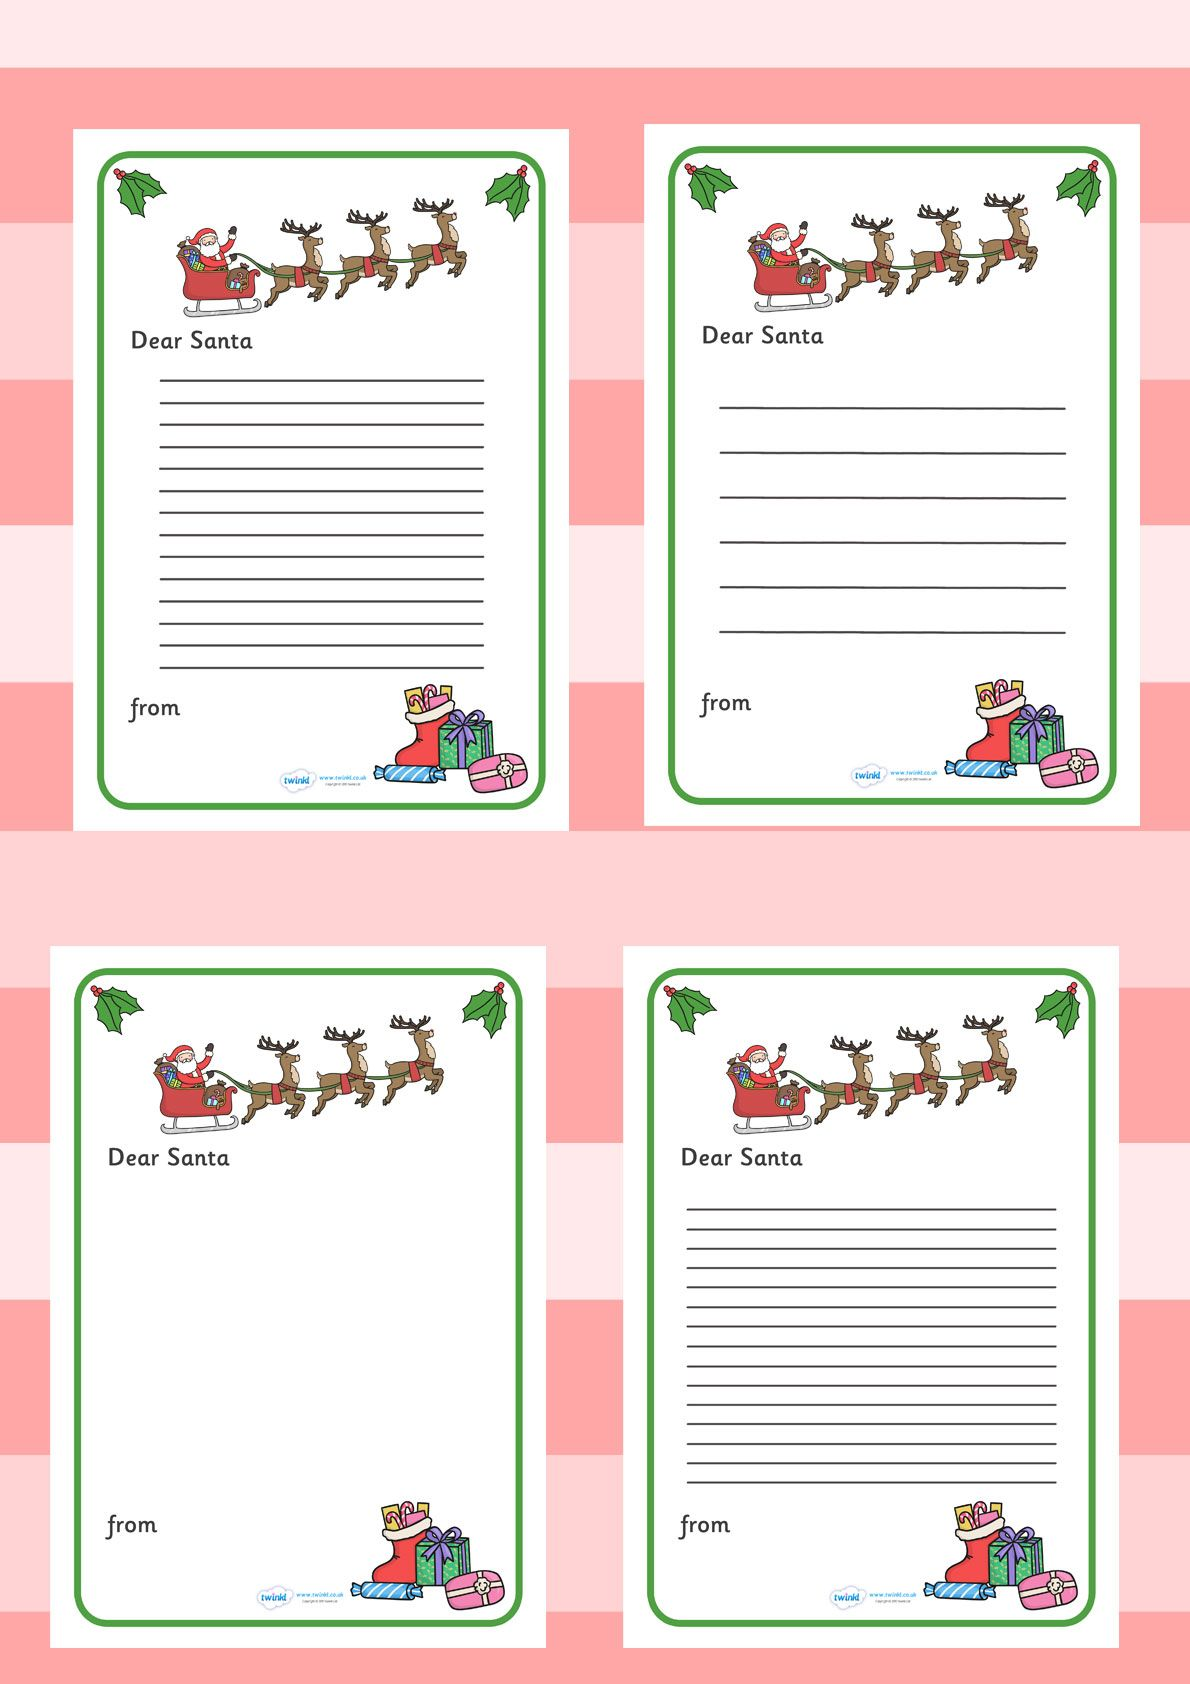 Twinkl Resources  Letter To Santa  Printable Resources For